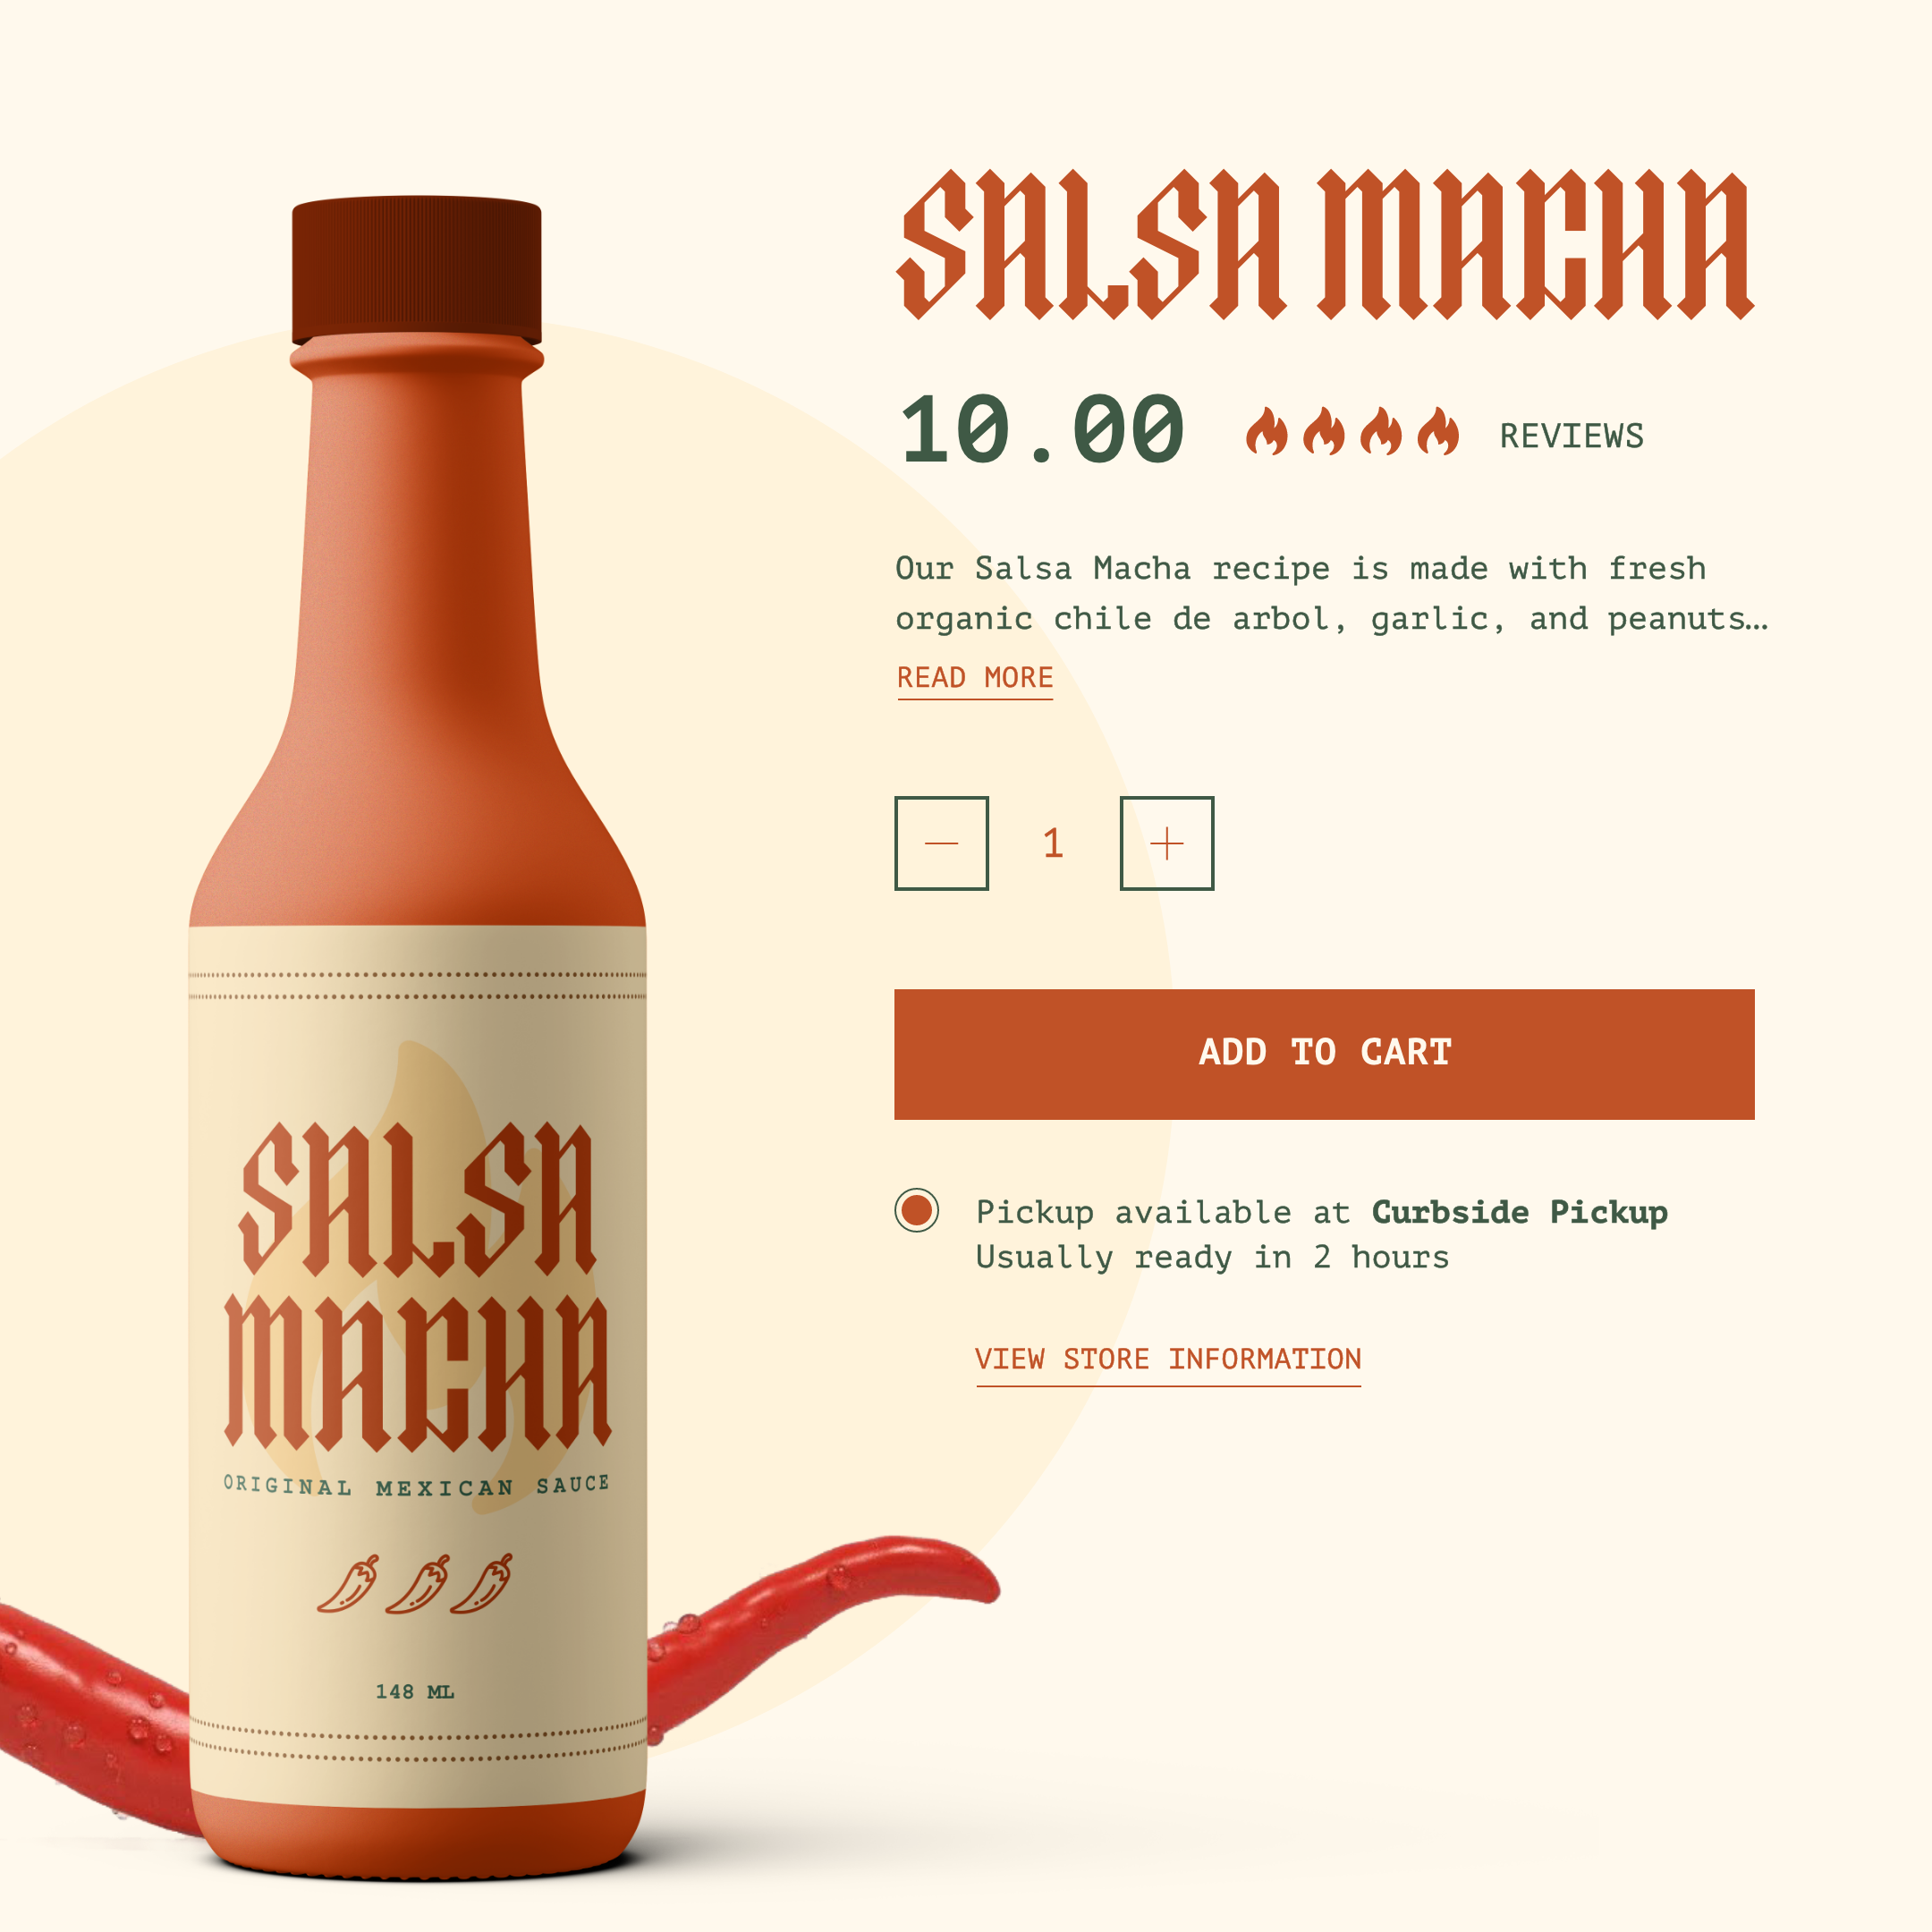 product page for salsa